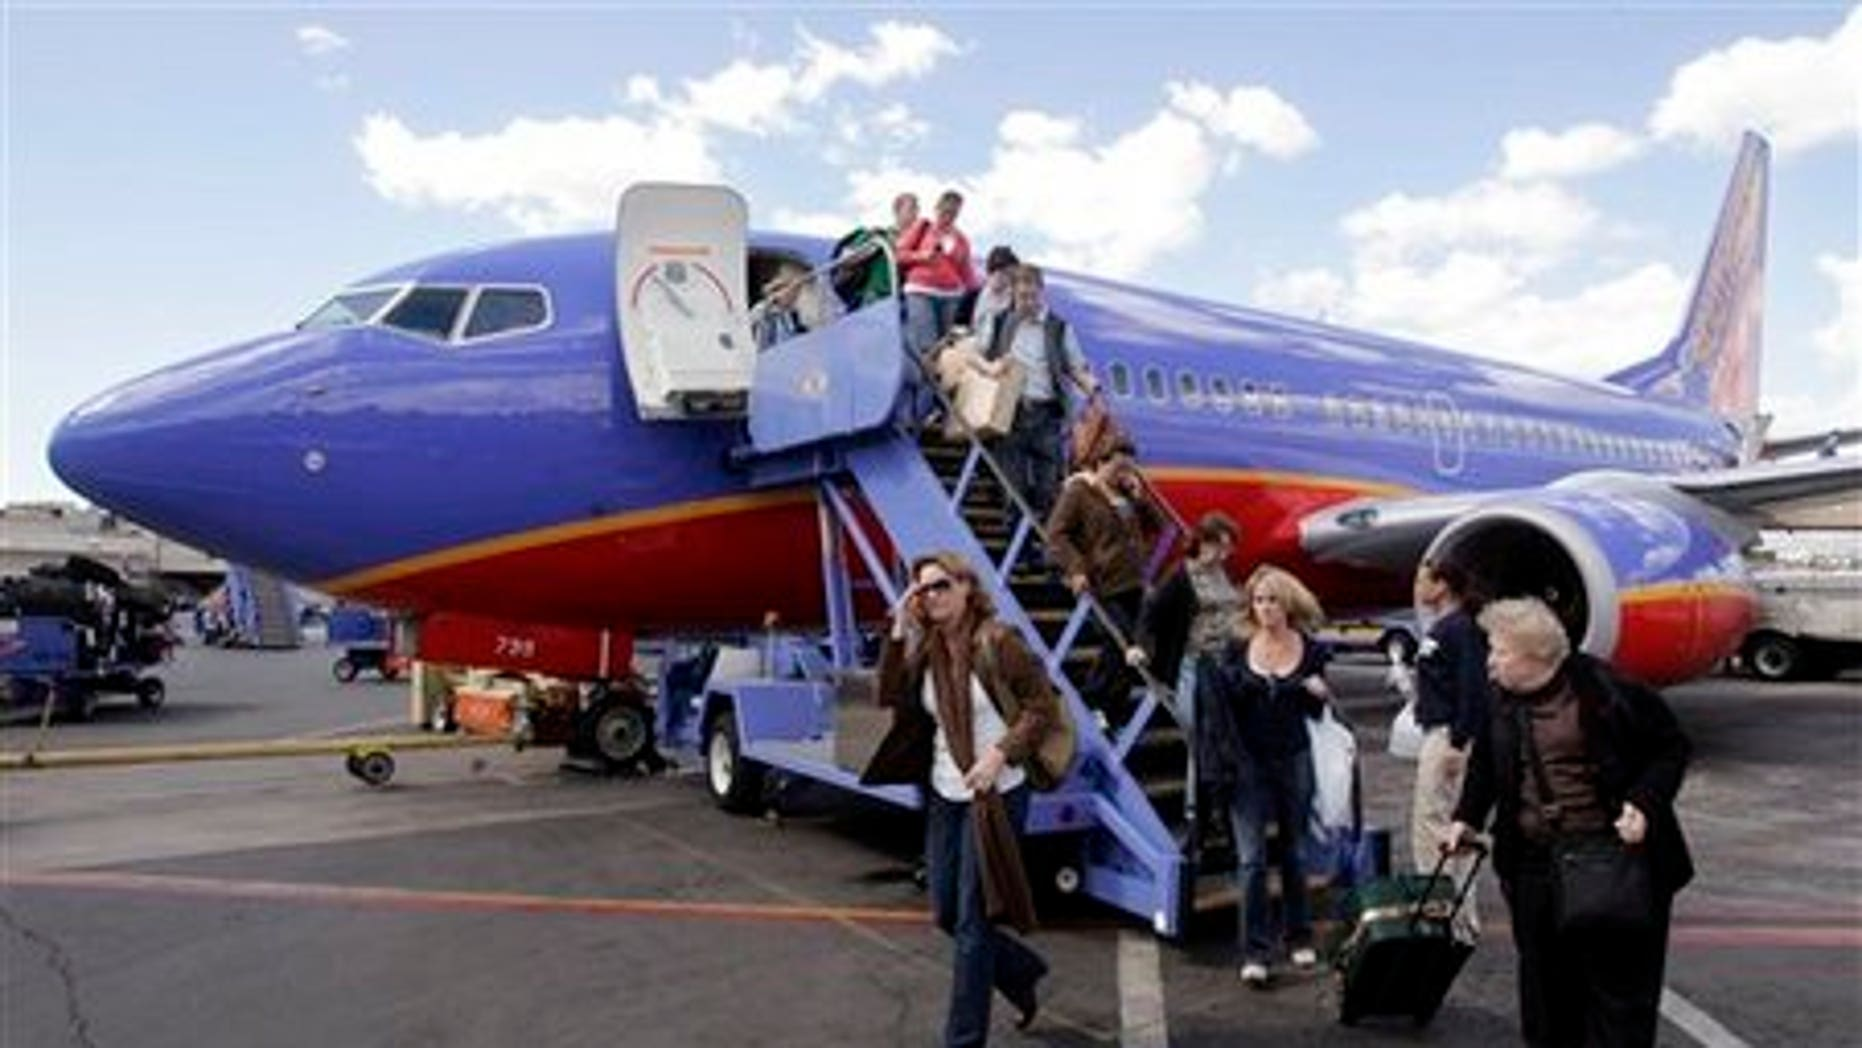 d6e3f9088c60 Passengers disembark a Southwest plane with carry-on luggage.